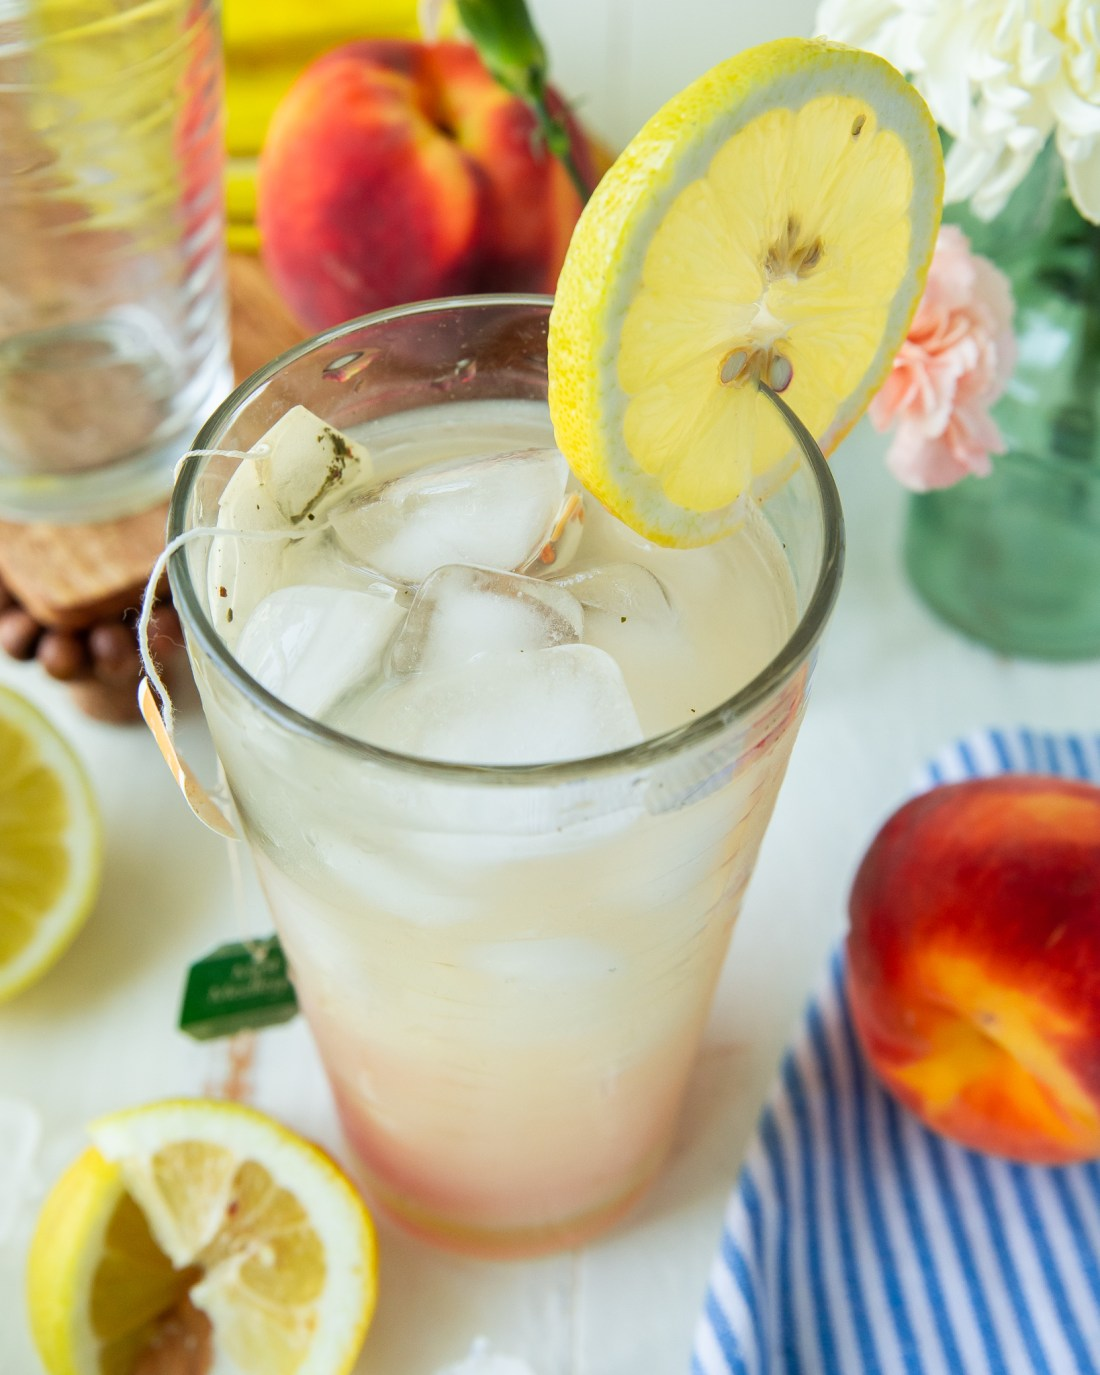 Mint and Peach caffeine-free lemon tea